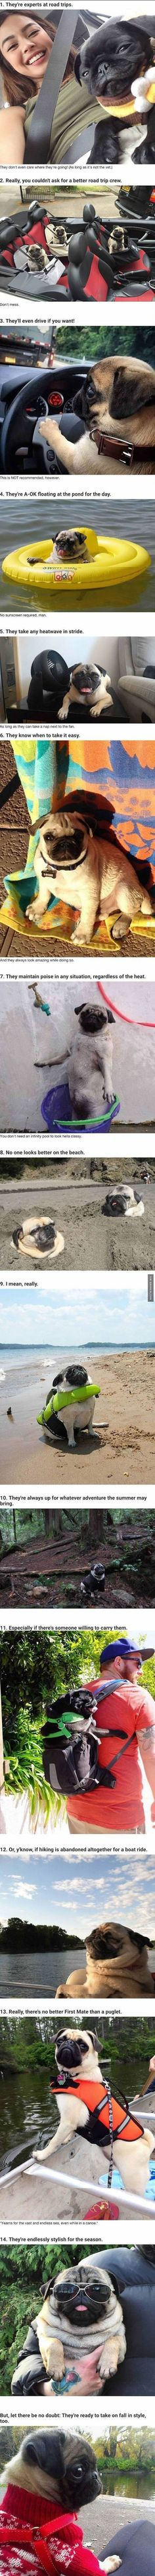 Funny Images - 25 Images